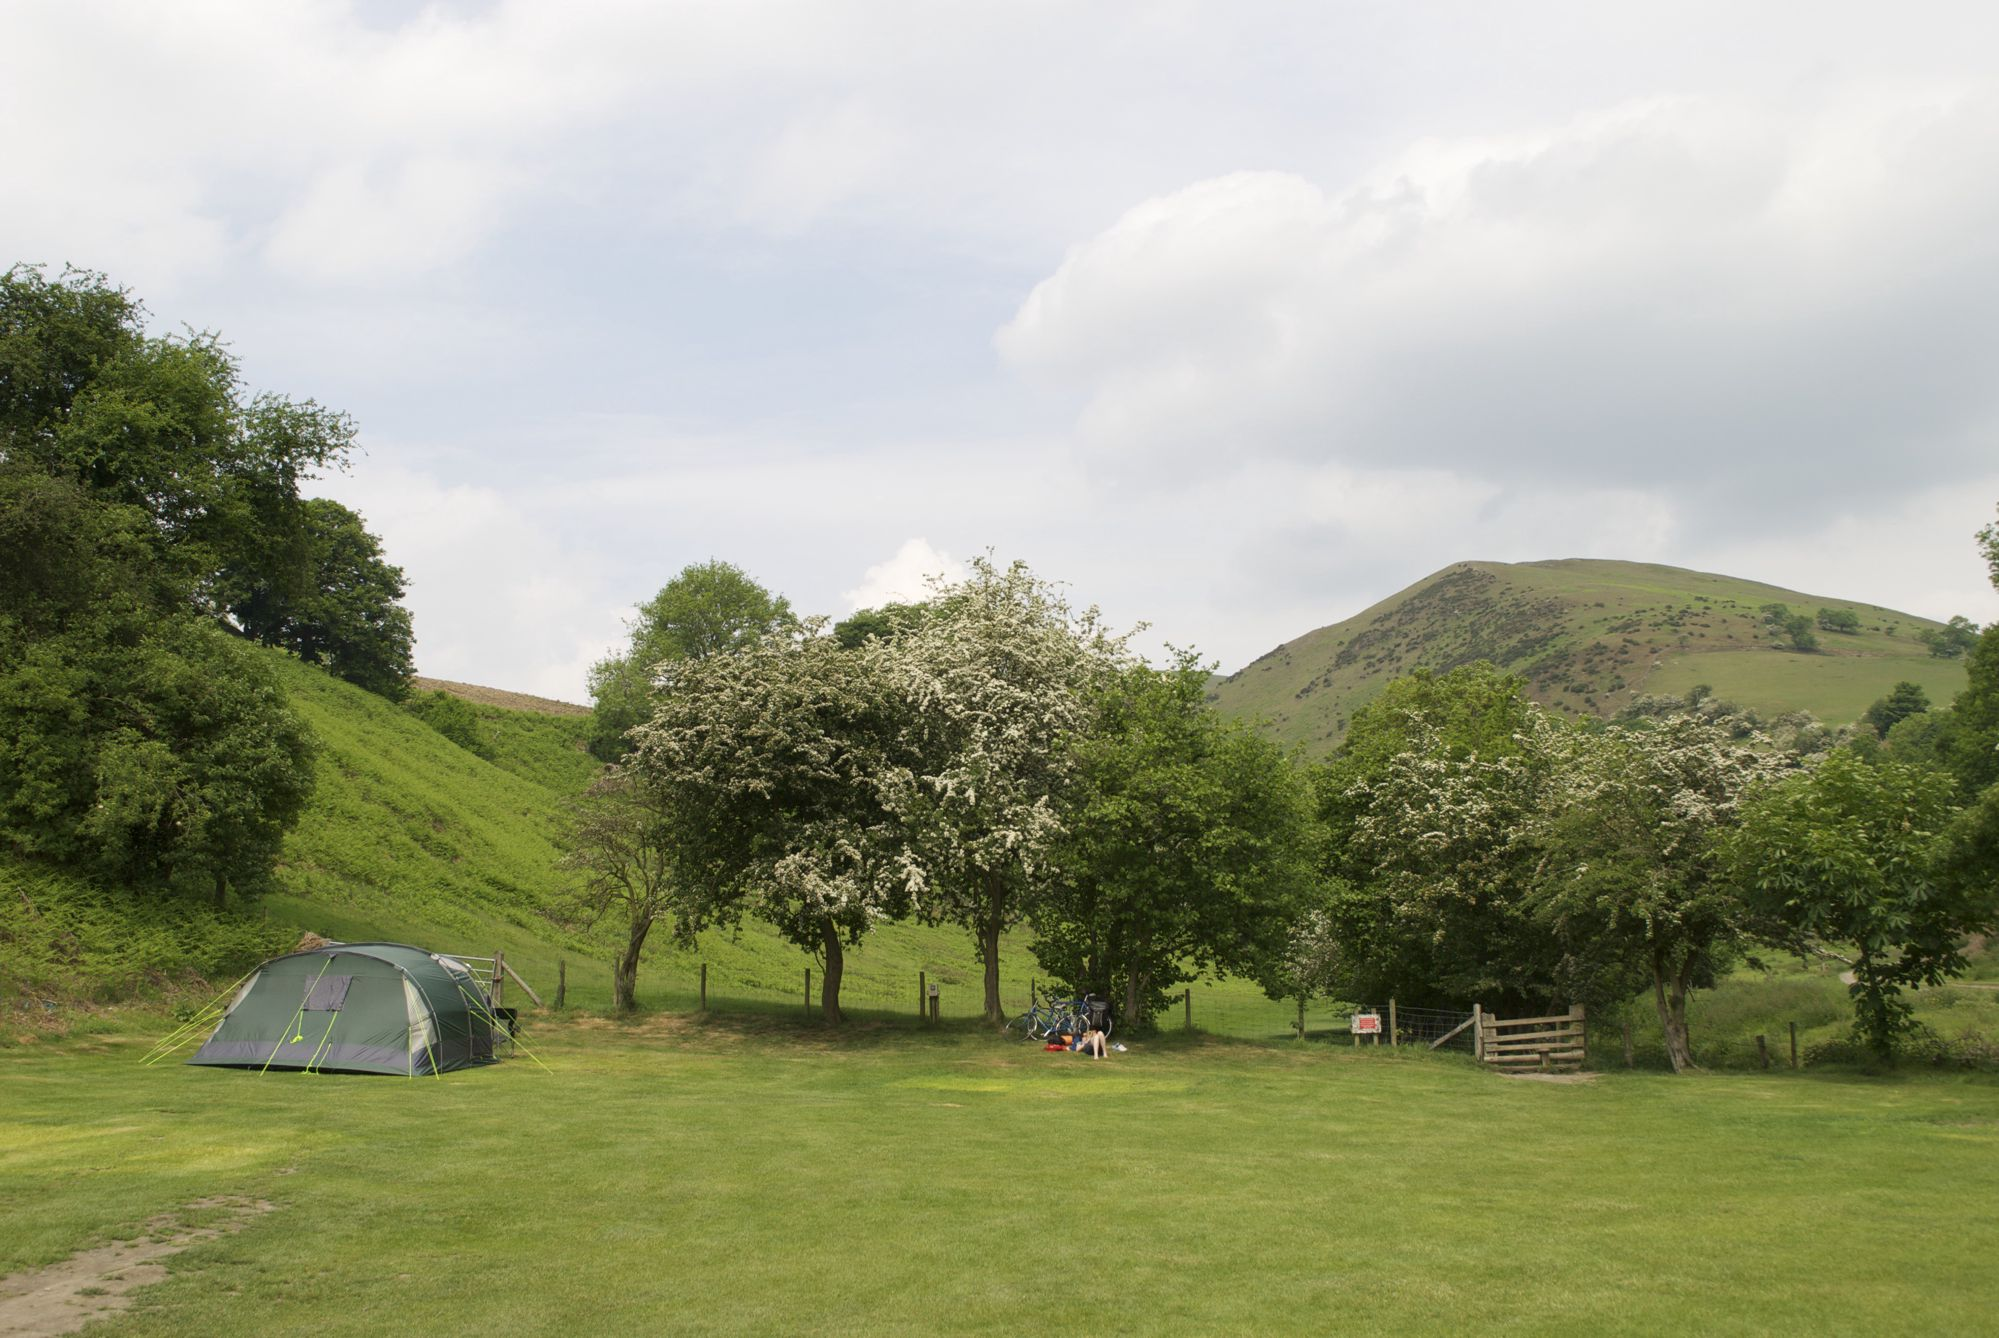 For the past 500 million years, the area now known as Shropshire has had it tough.